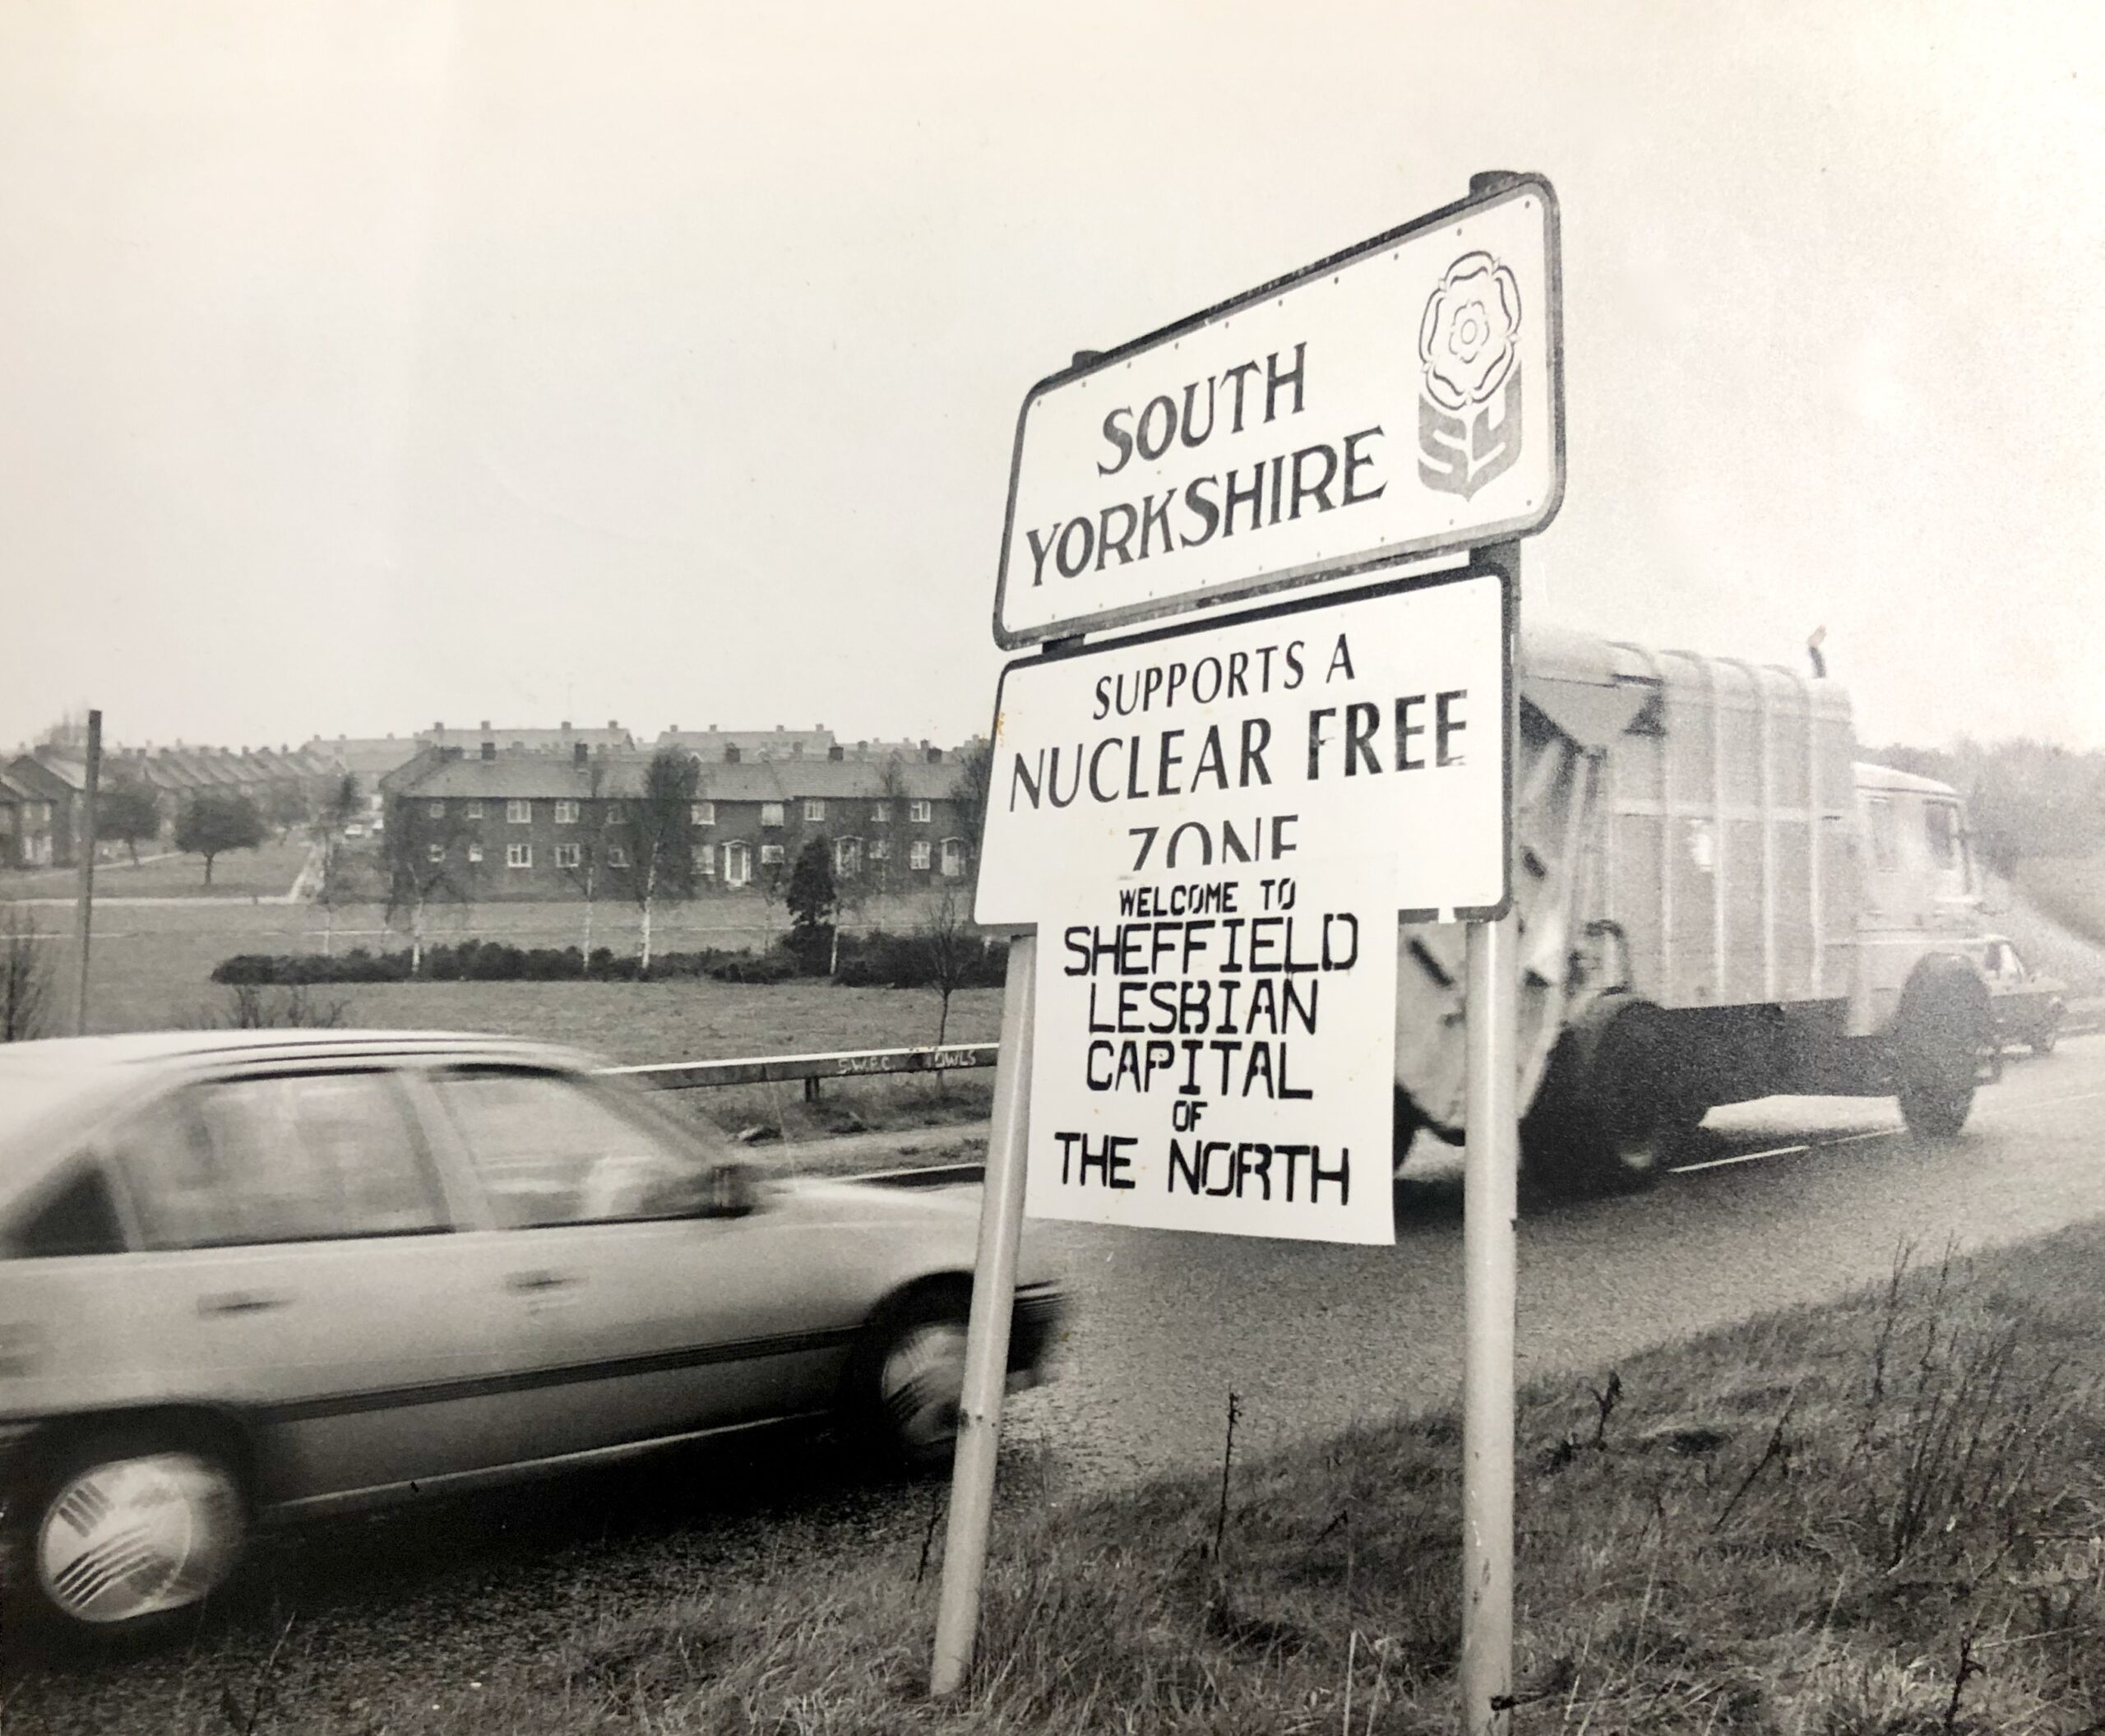 Boundary sign for South Yorkshire, to which someone has affixed a placard that reads 'Welcome to Sheffield lesbian capital of the north'. Houses are visible in the background, while a car drives past in the foreground.